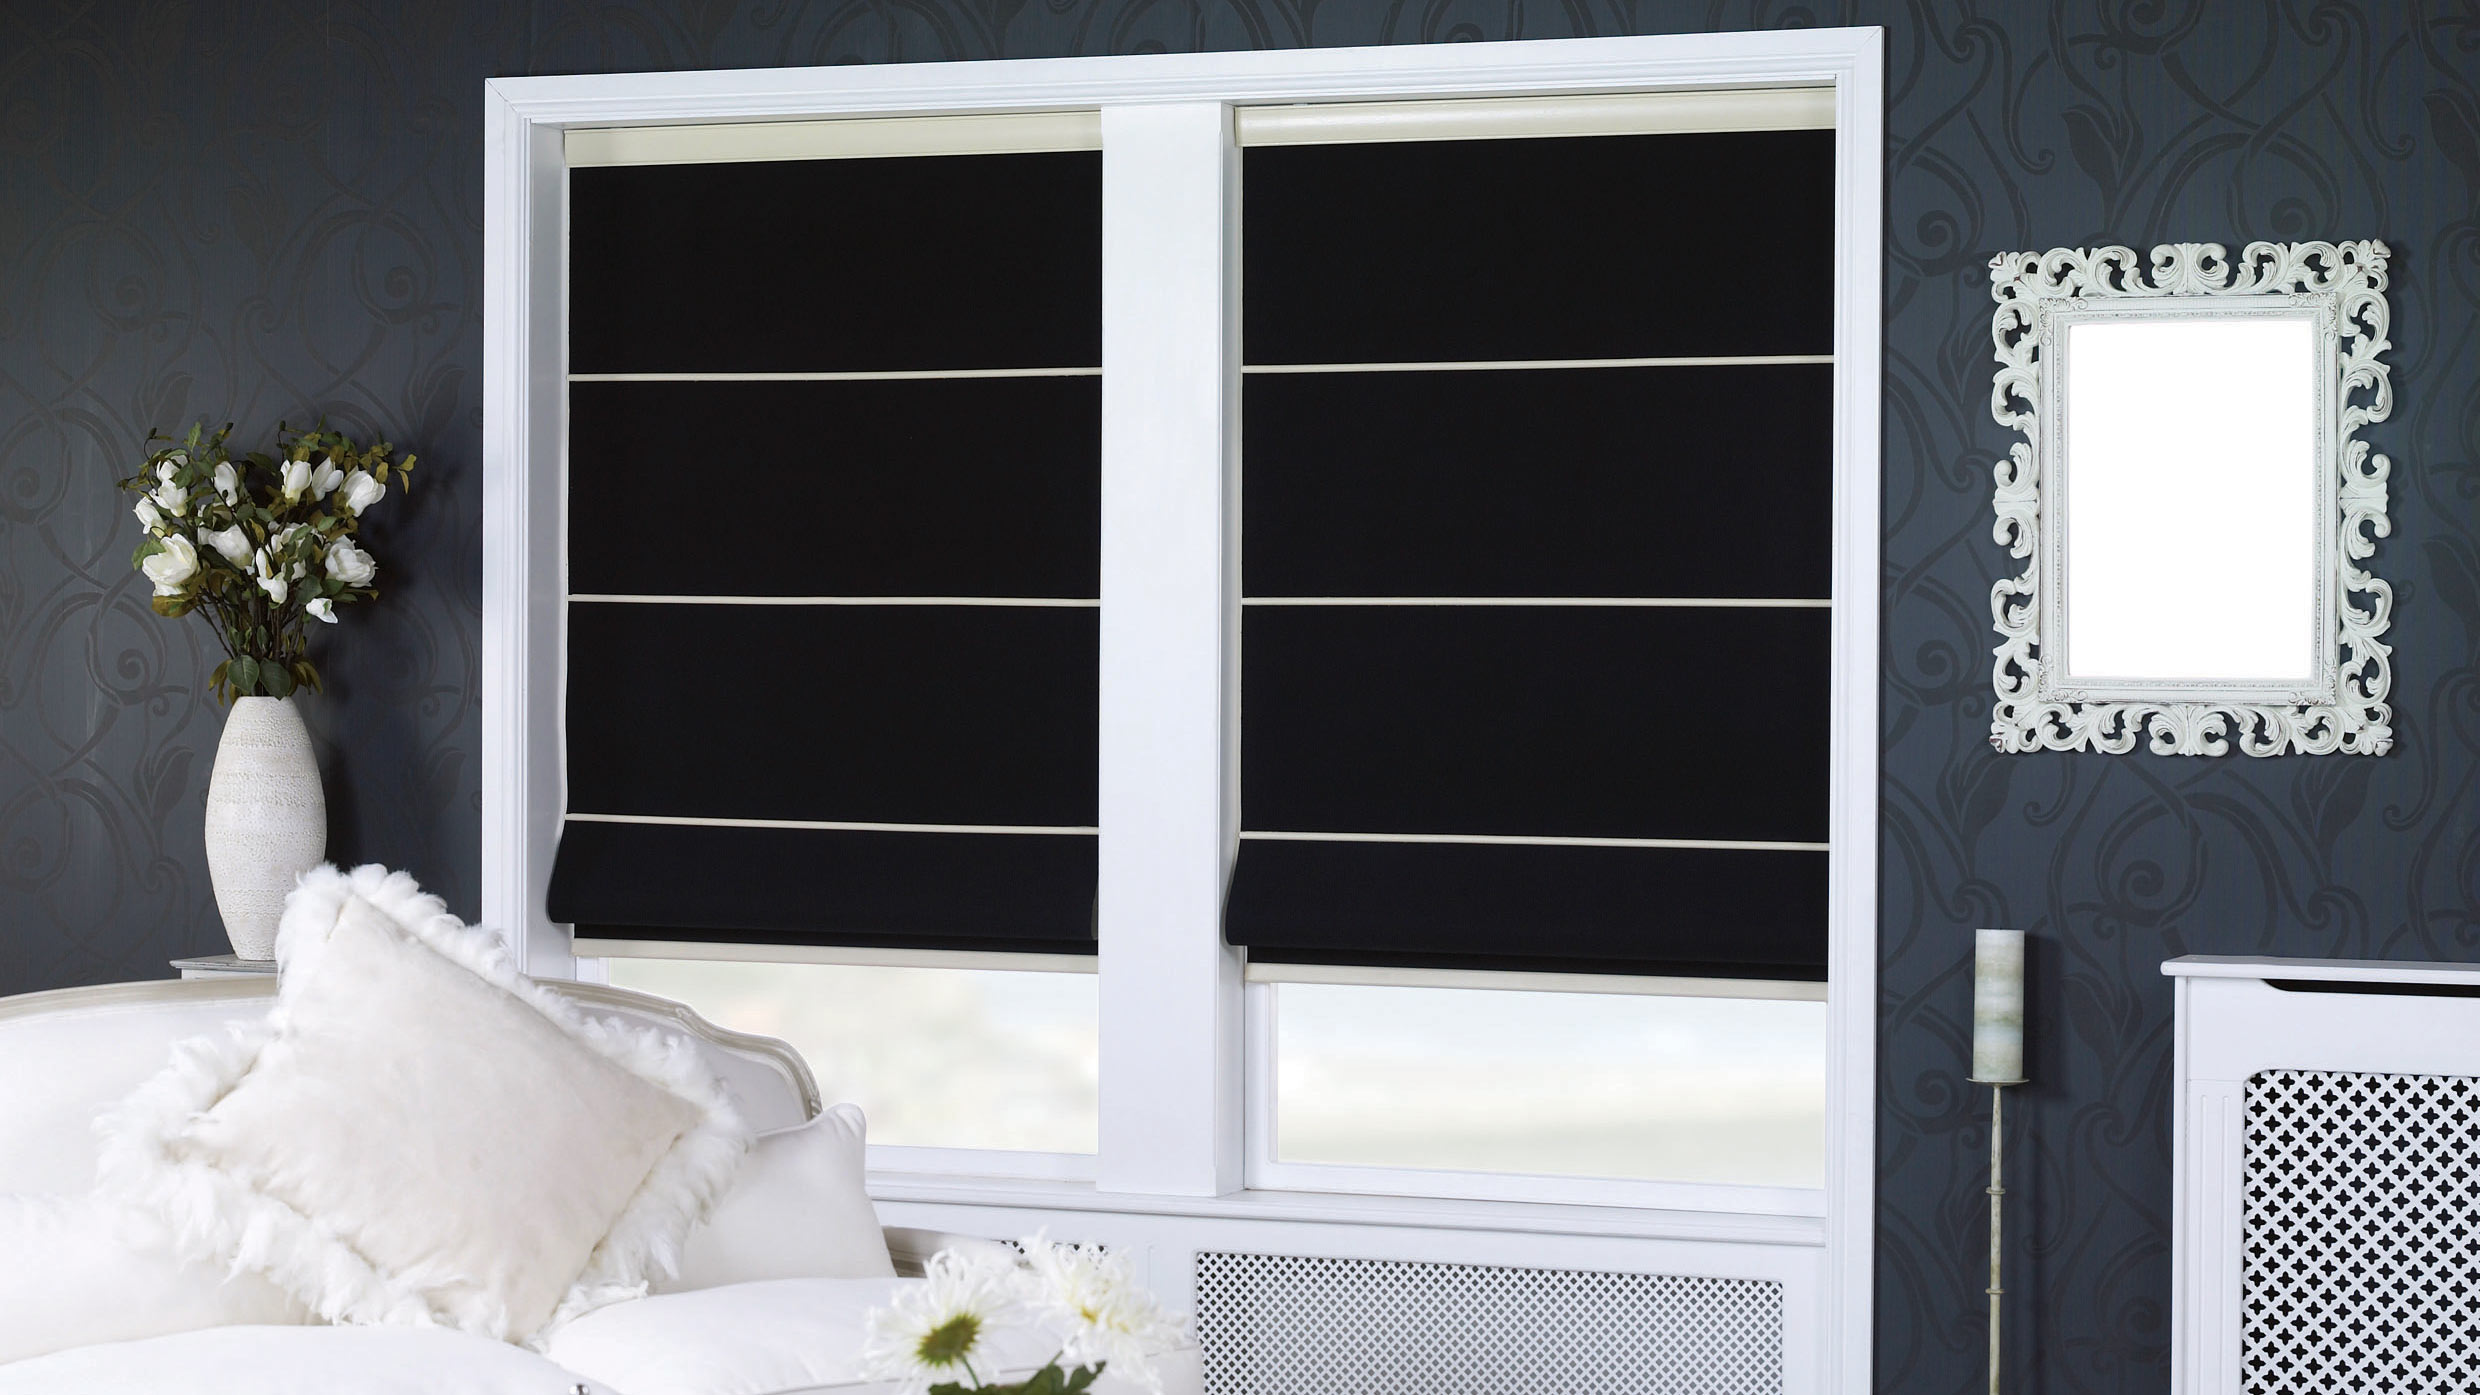 roman blinds - Littlehampton Blinds